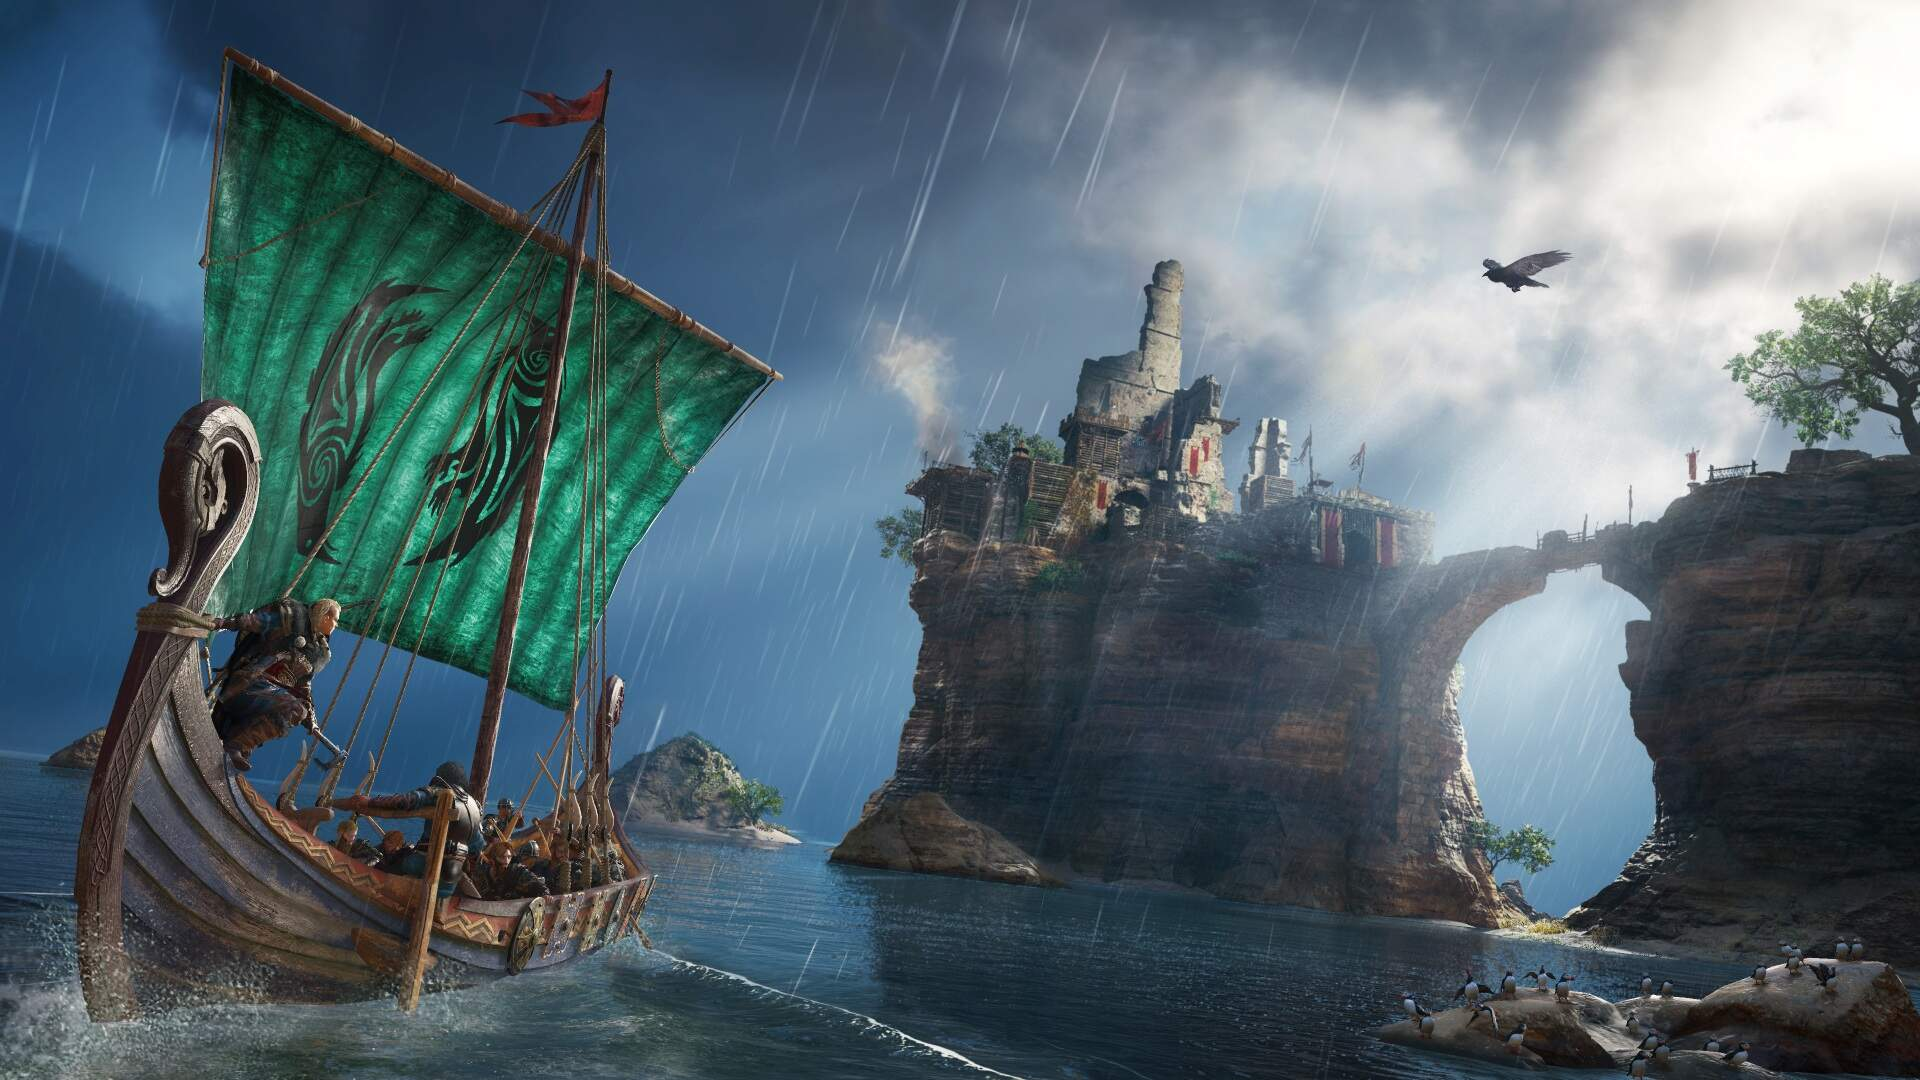 Ubisoft CEO Plans to Establish Multidisciplinary Group in Wake of Allegations